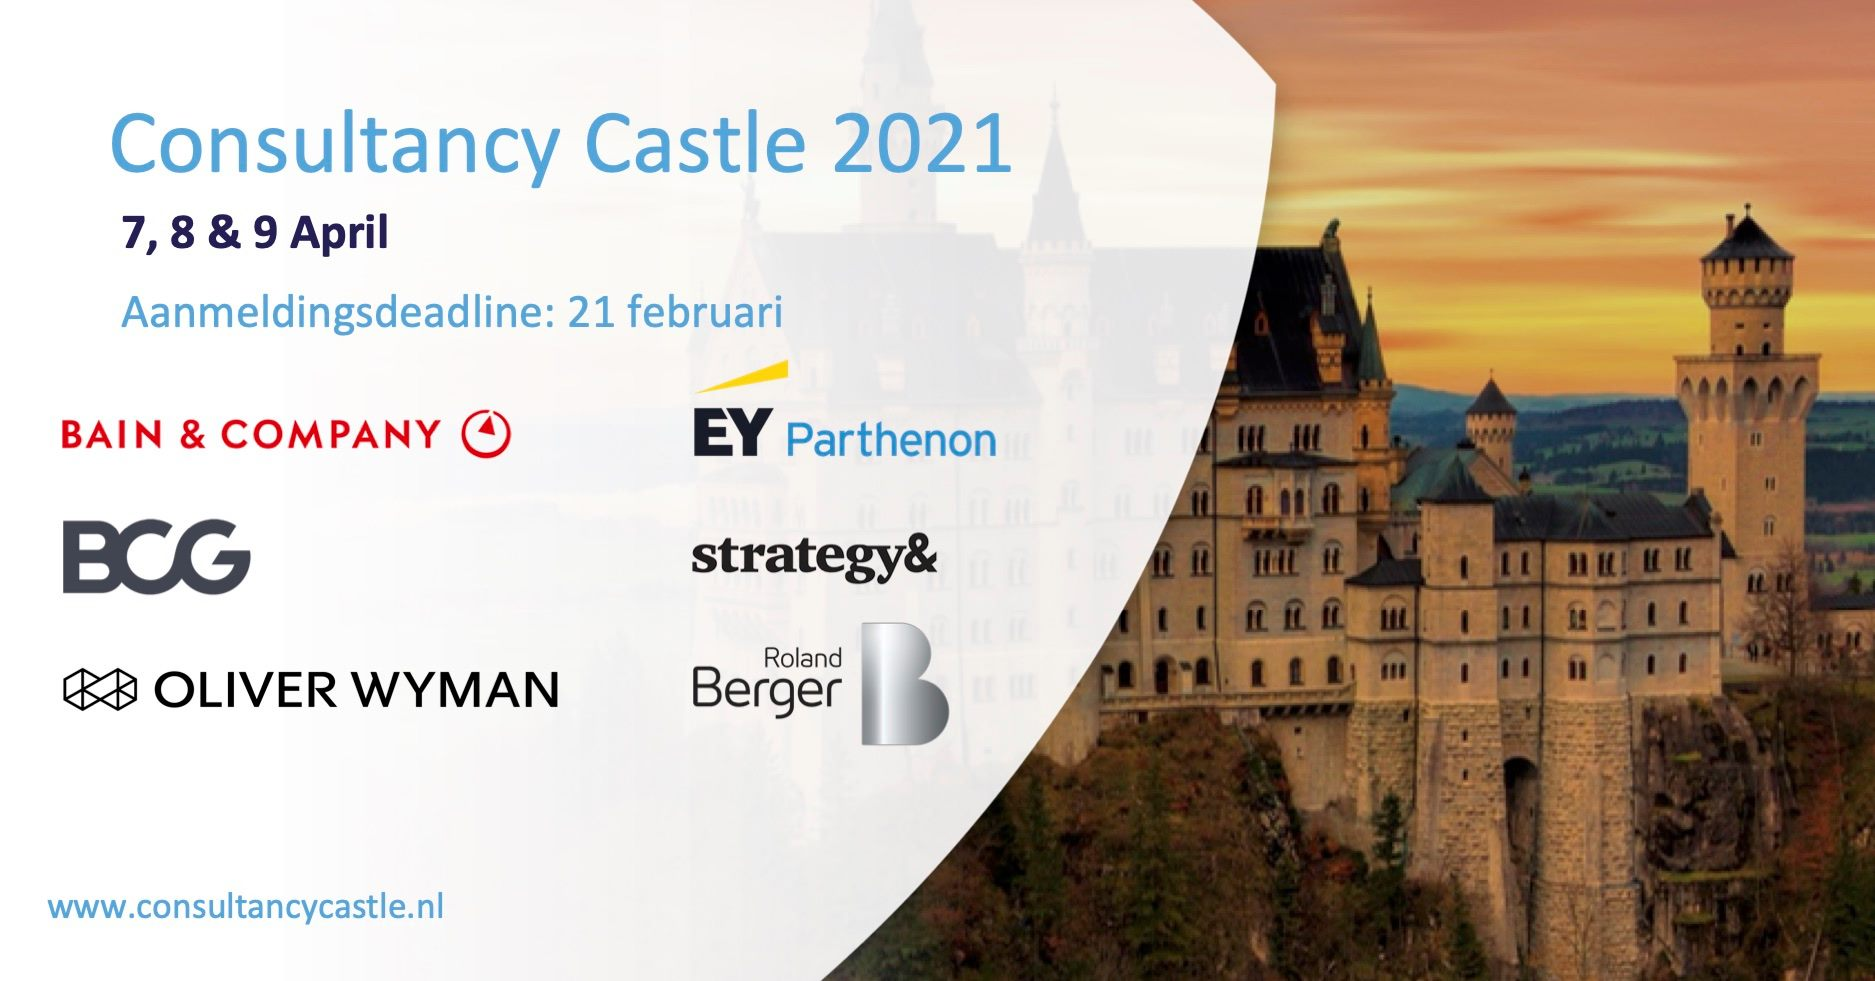 STAR Consultancy Castle 2021 (online)